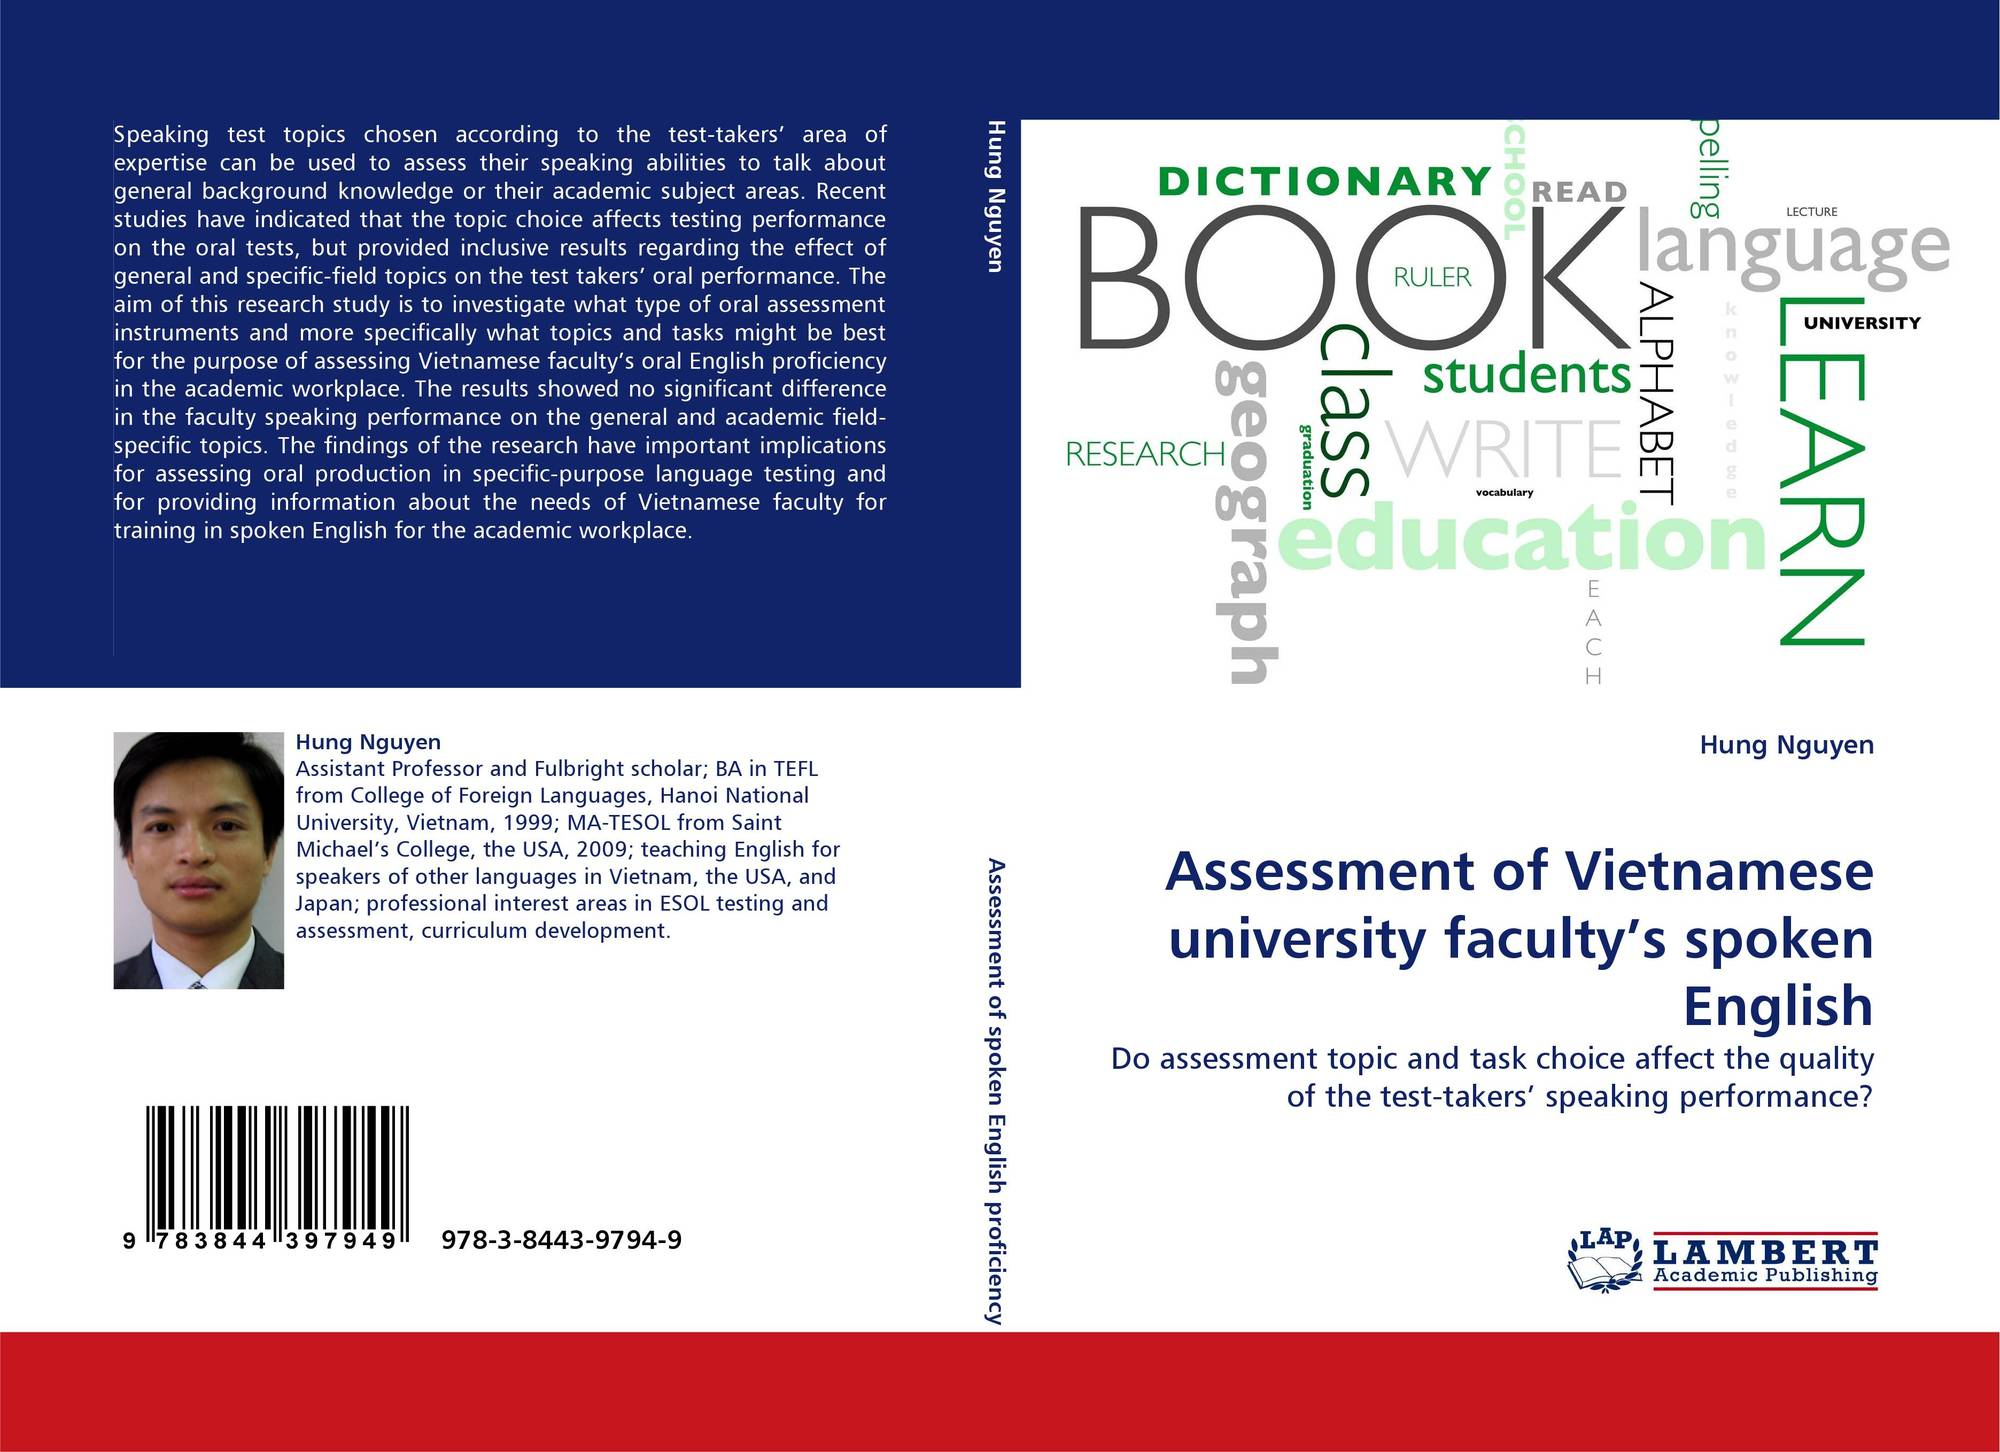 Assessment of Vietnamese university faculty's spoken English